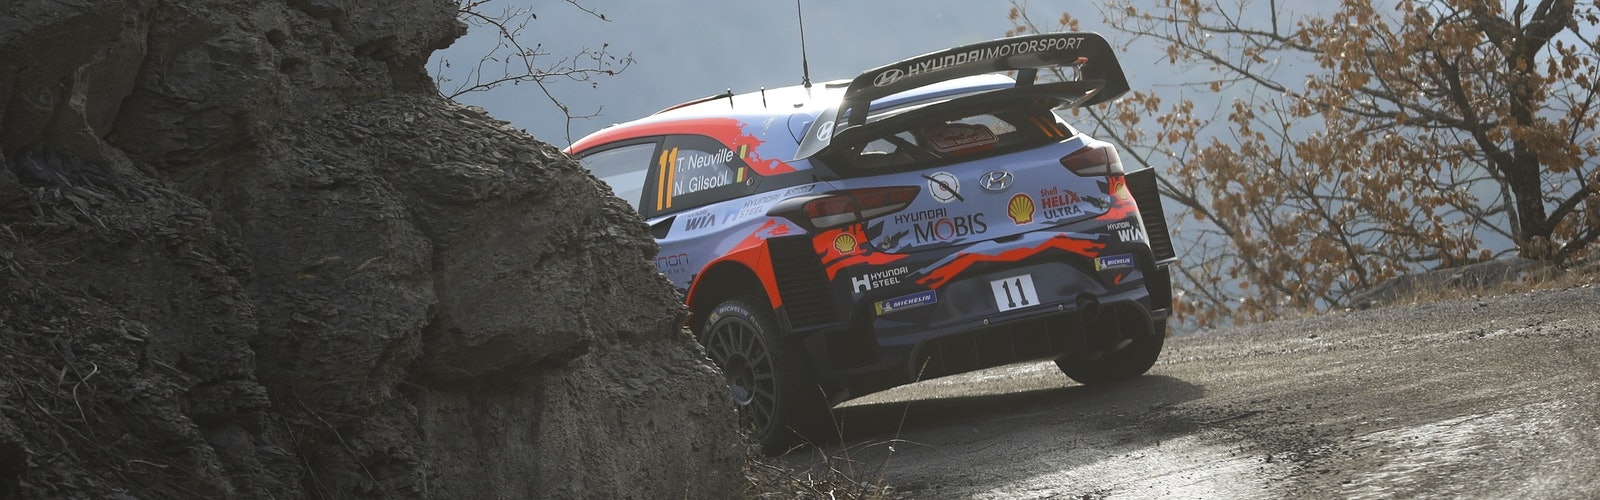 Neuville01MC20mj04295